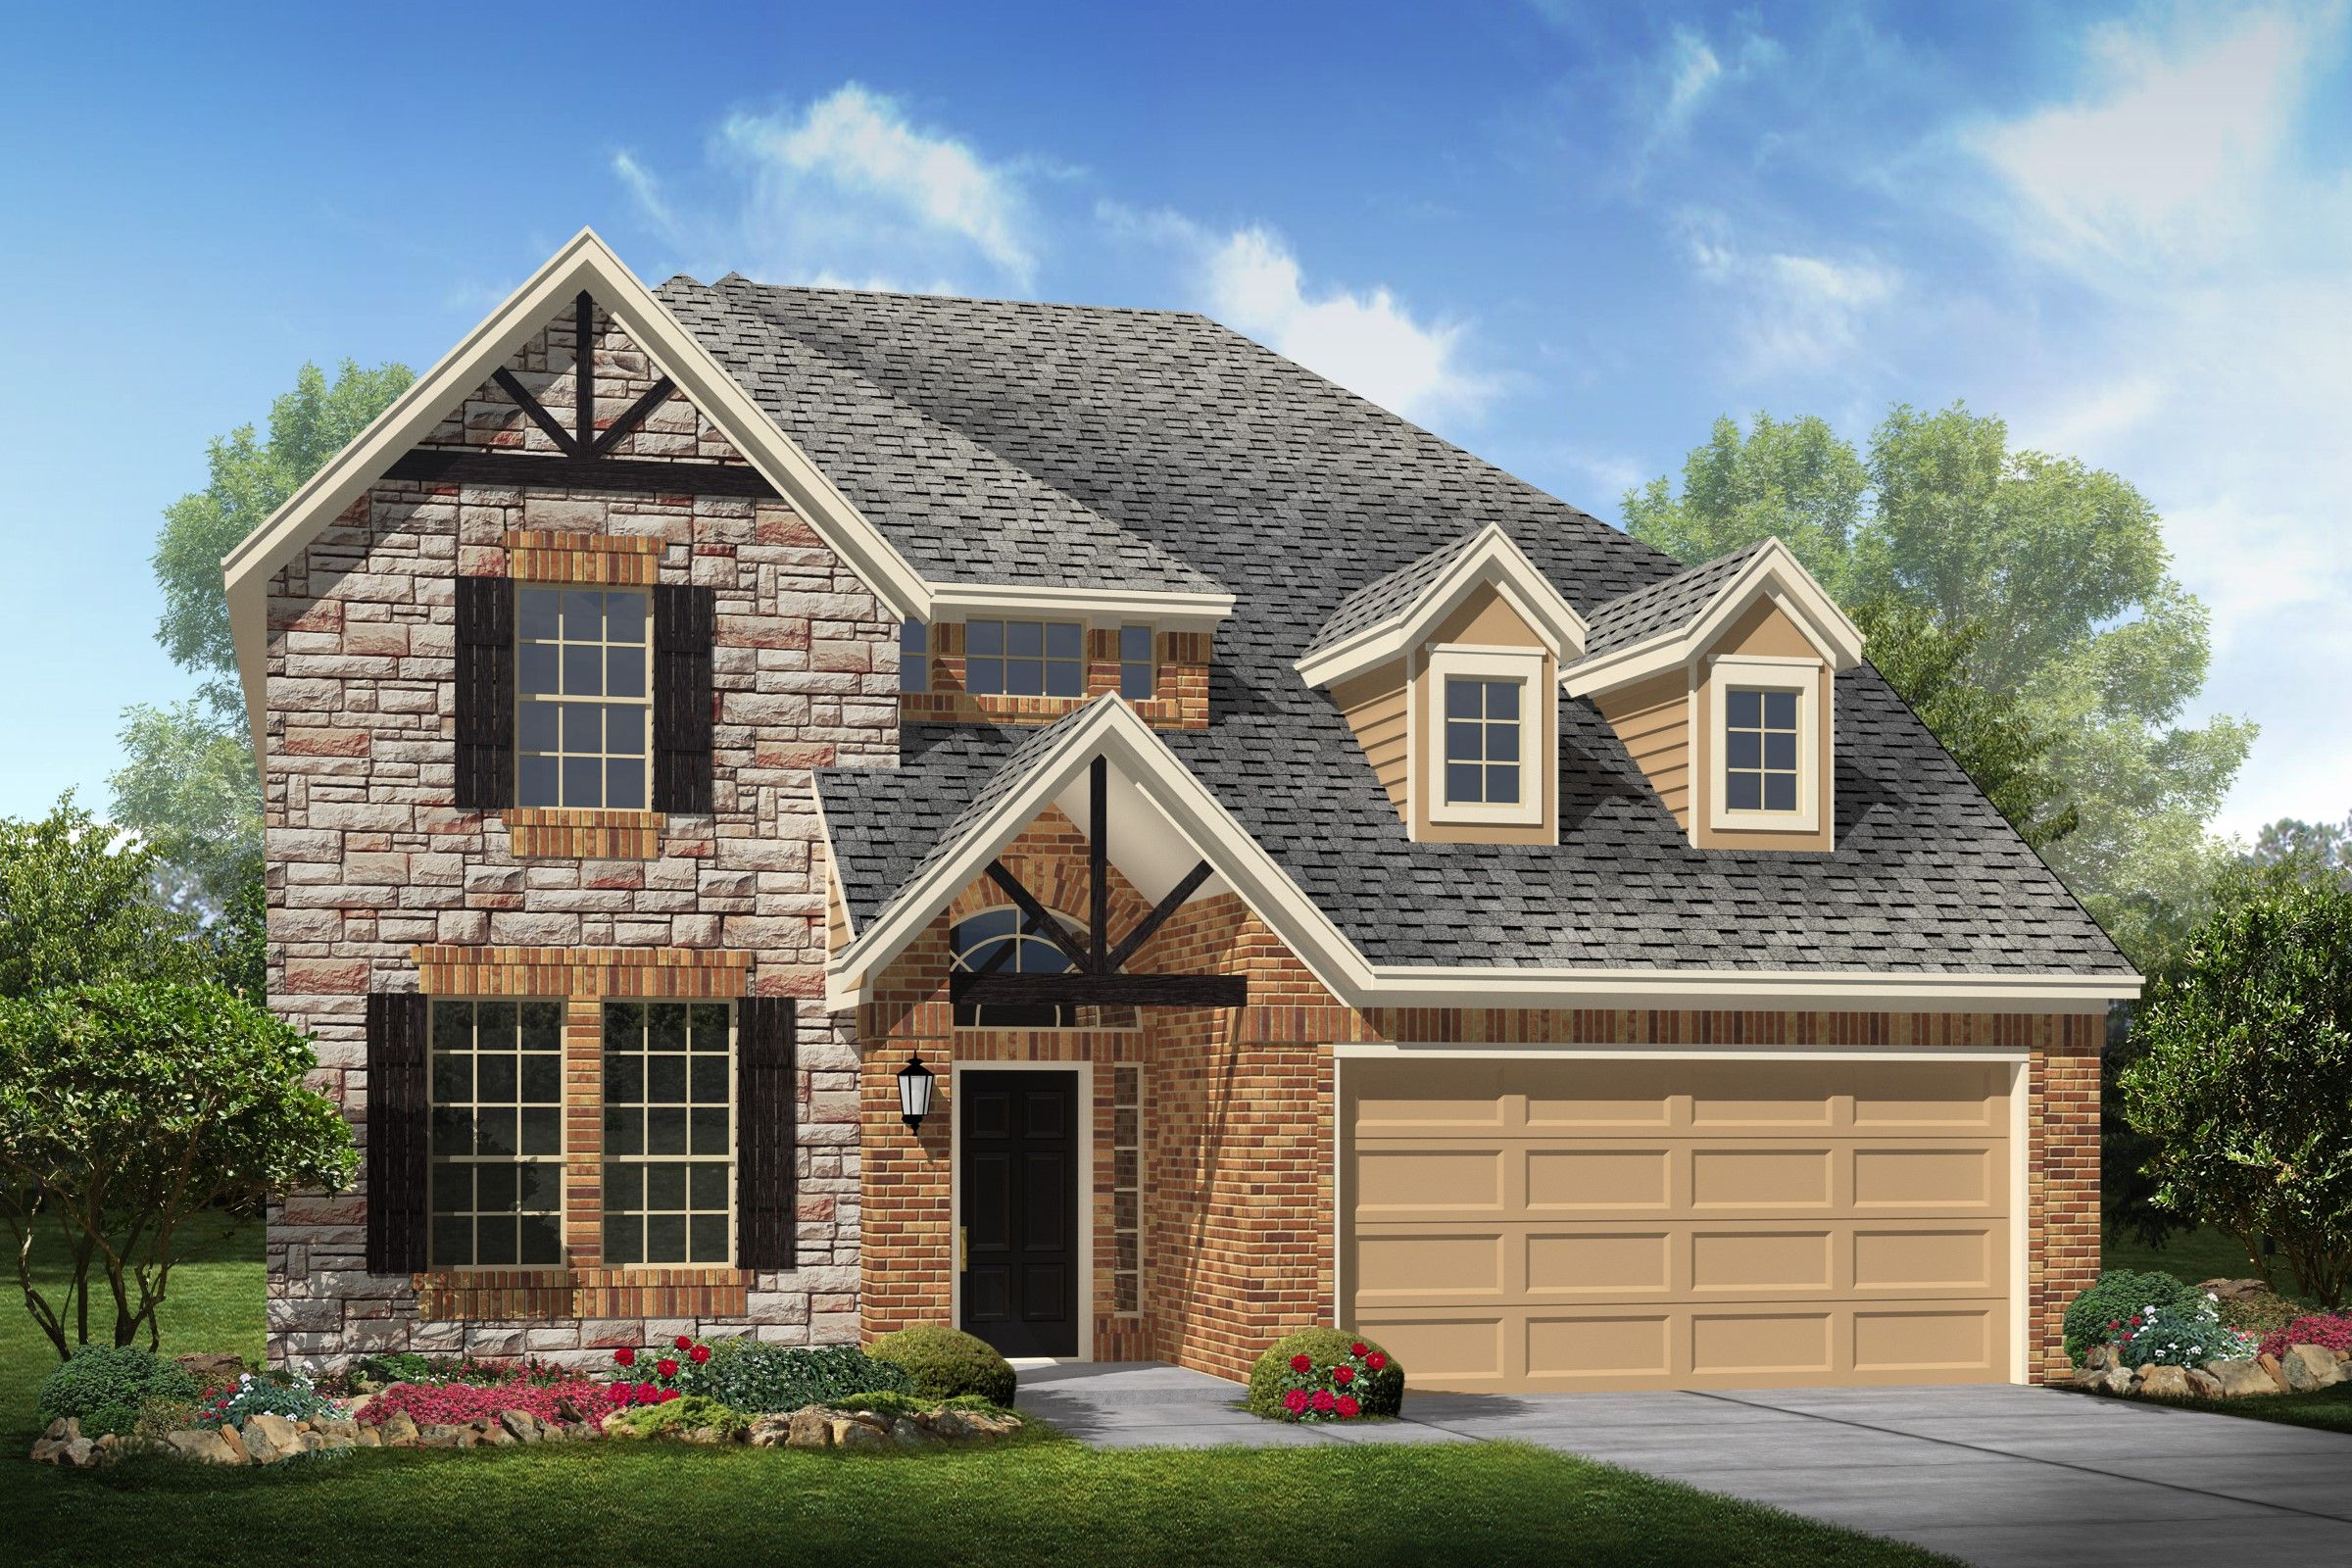 new homes for sale in pearland tx newhomesource - Design A New Home